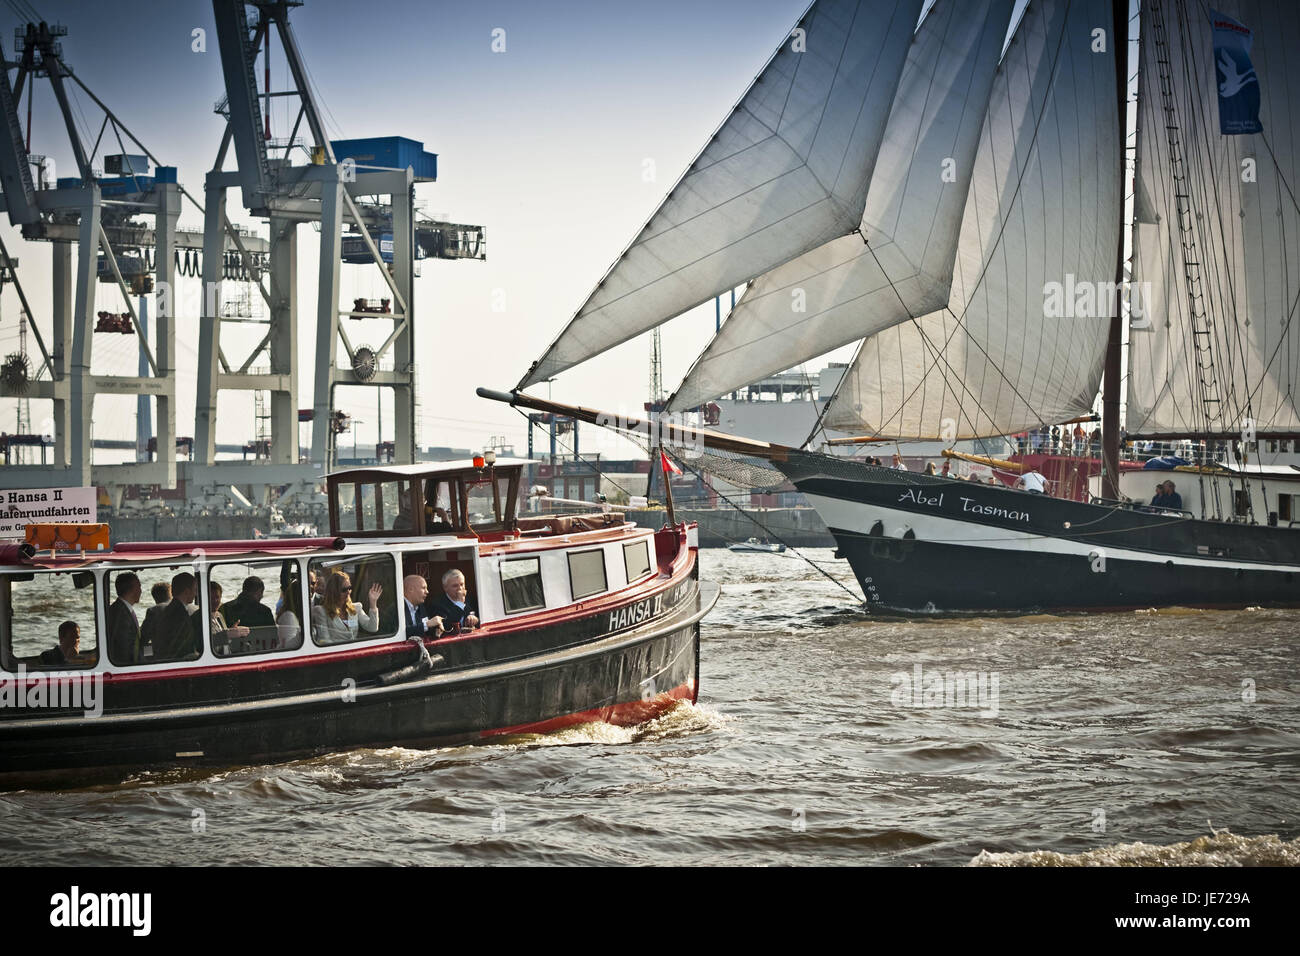 Germany, Hamburg, the Elbe, harbour, harbour birthday, bedding-in save in 2011, attraction, longboat, visitor, boat, - Stock Image